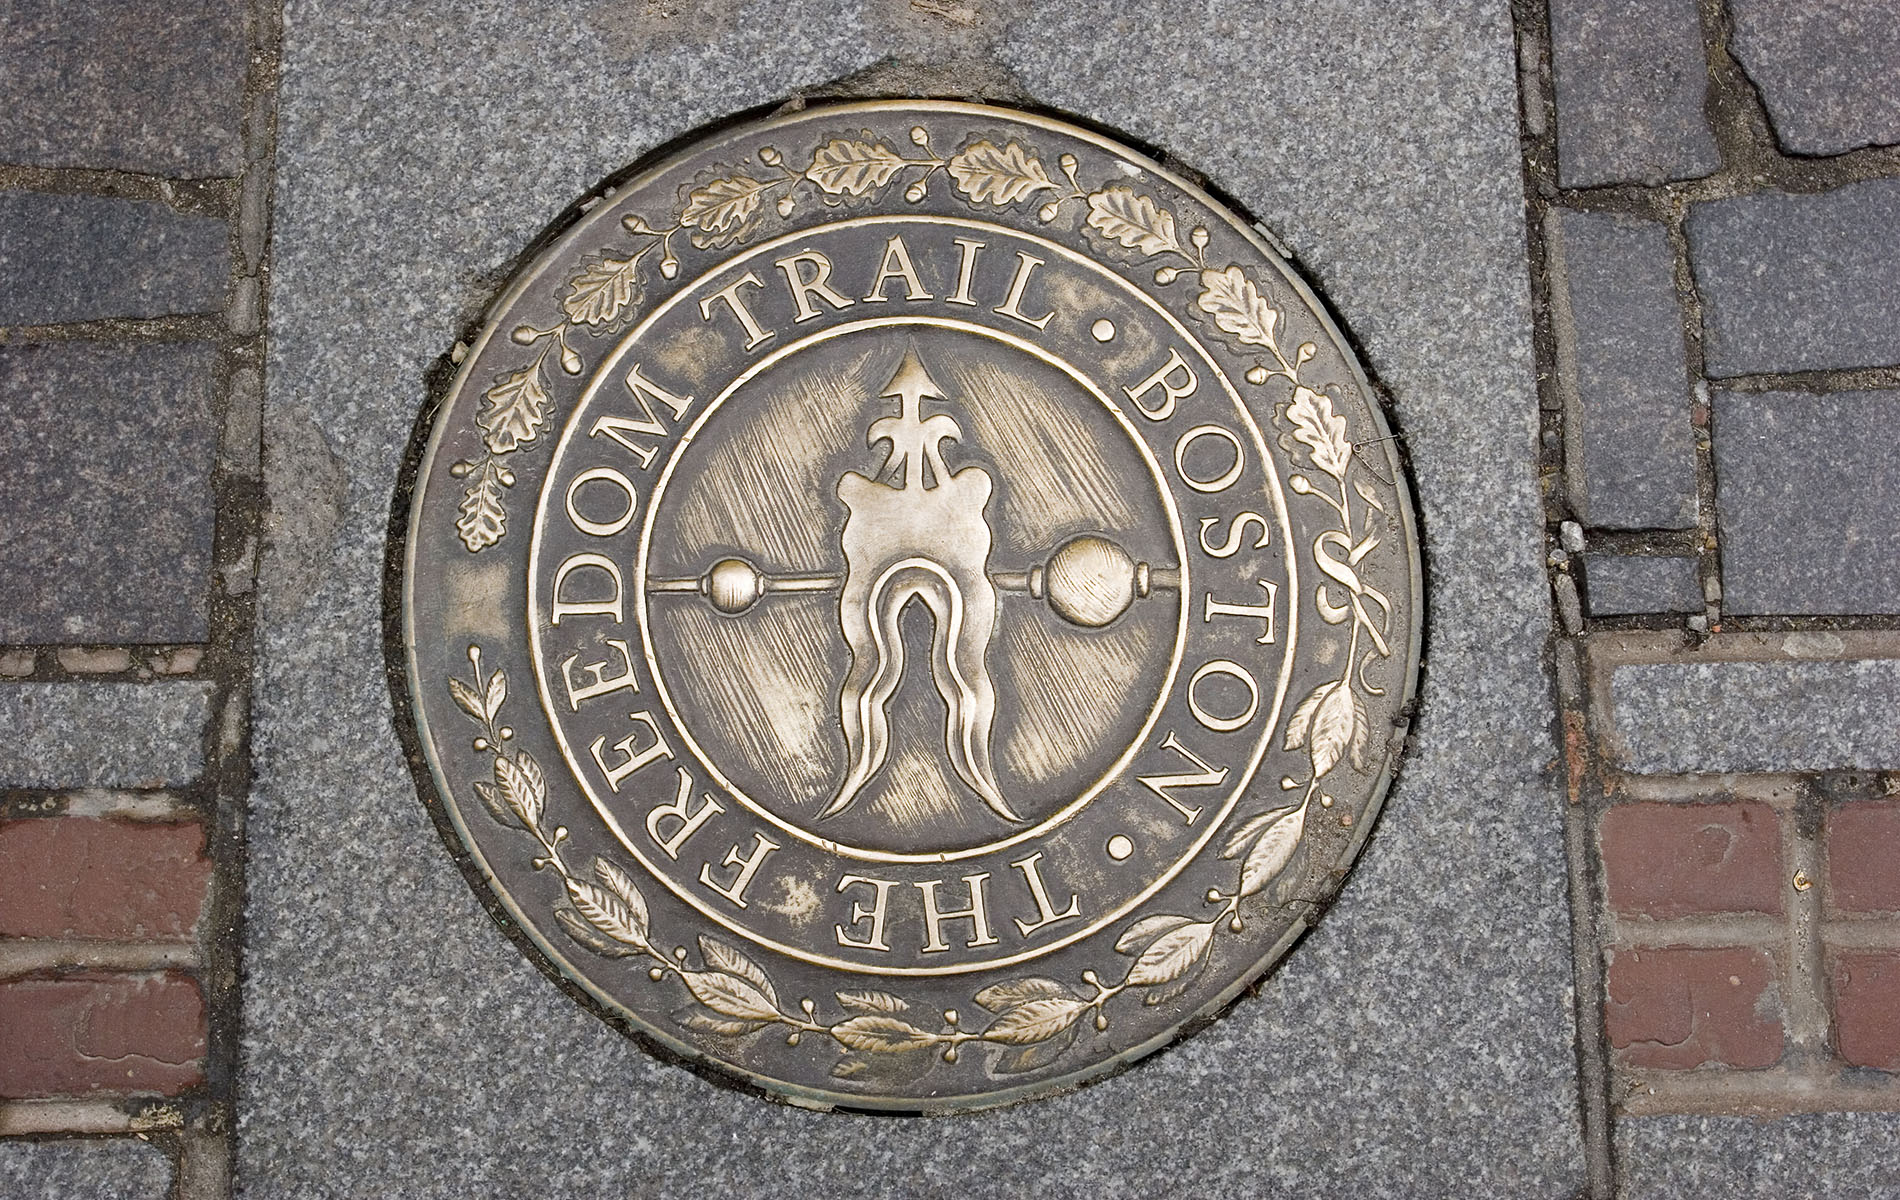 Freedom Trail bronze plaque on cement with red brick line